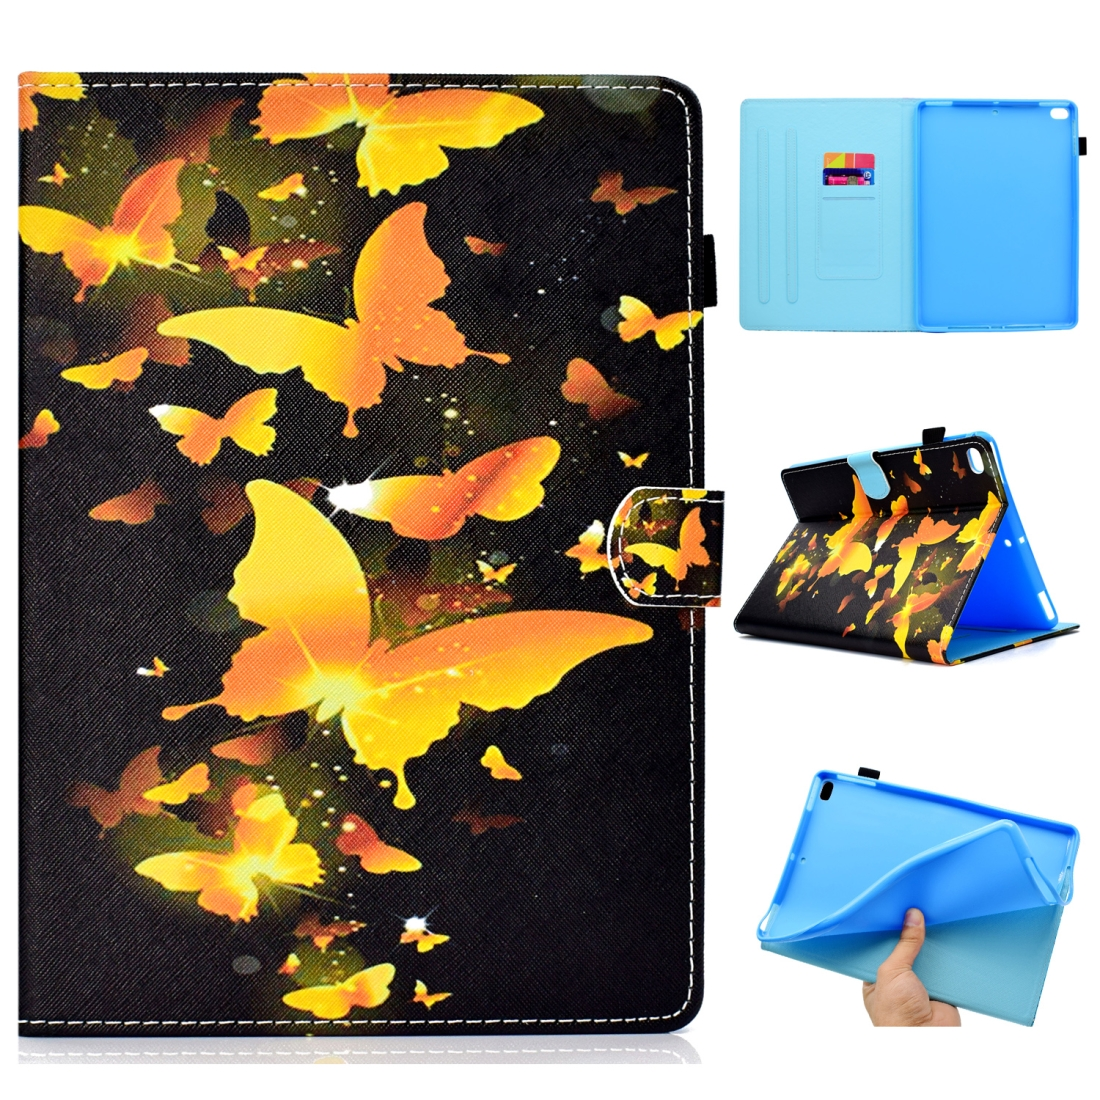 Case For iPad 5/ 6 Artistic Stitching Leather Case, with Sleeves & Auto Sleep function (Butterfly)